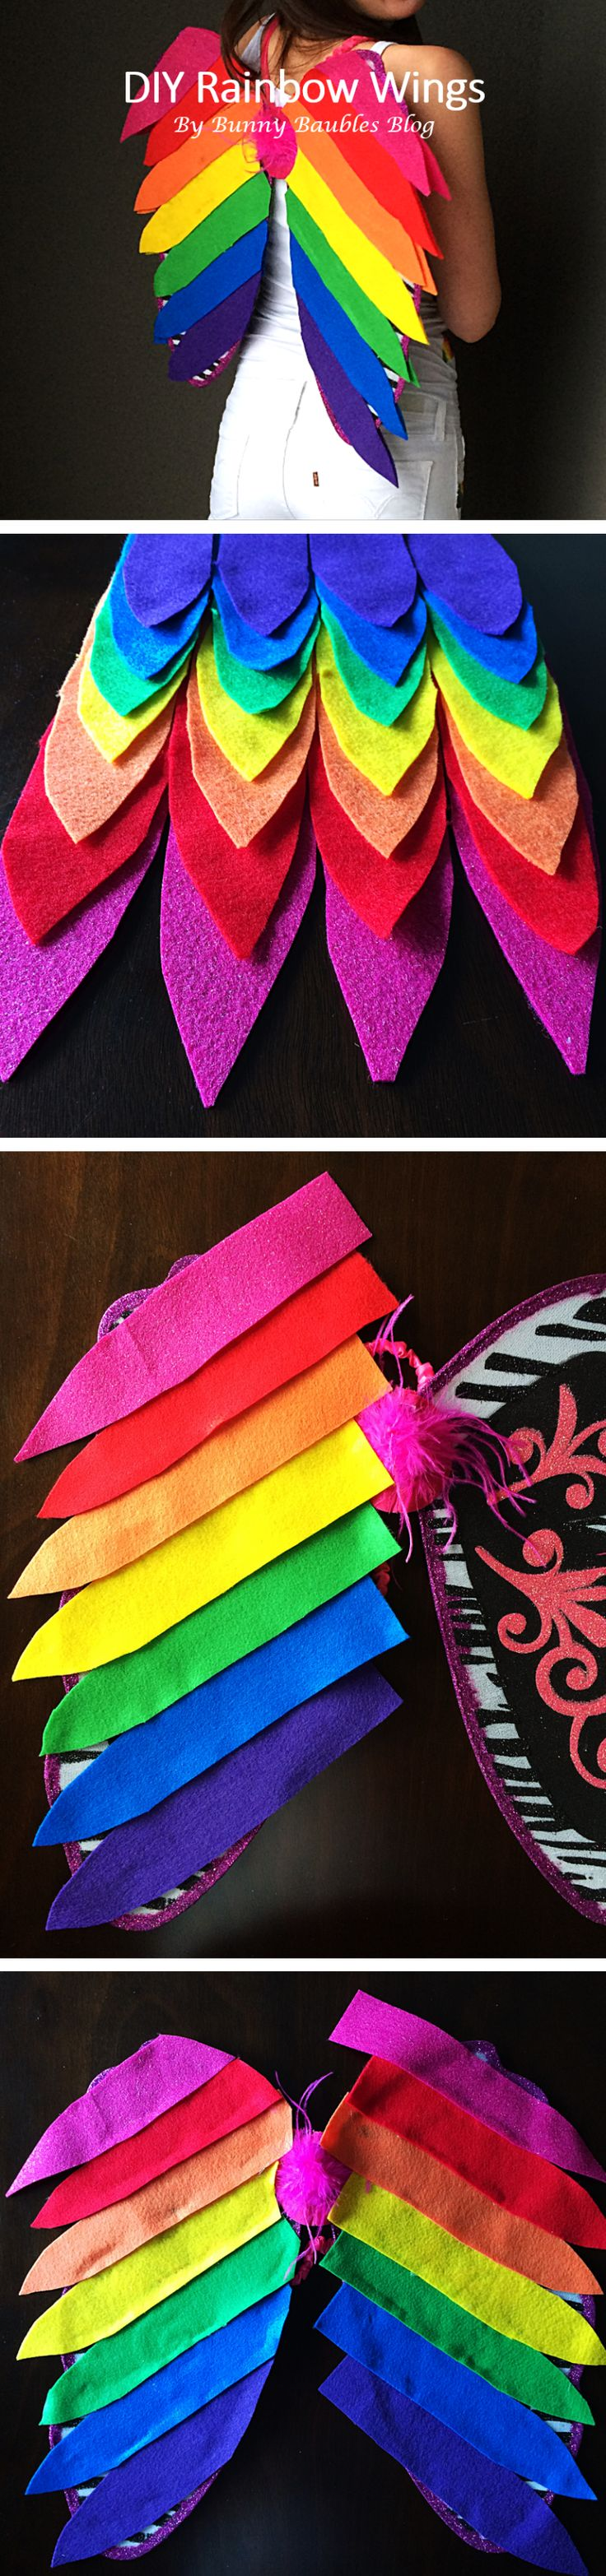 DIY rainbow wings for Lisa Frank Rainbow Kitten